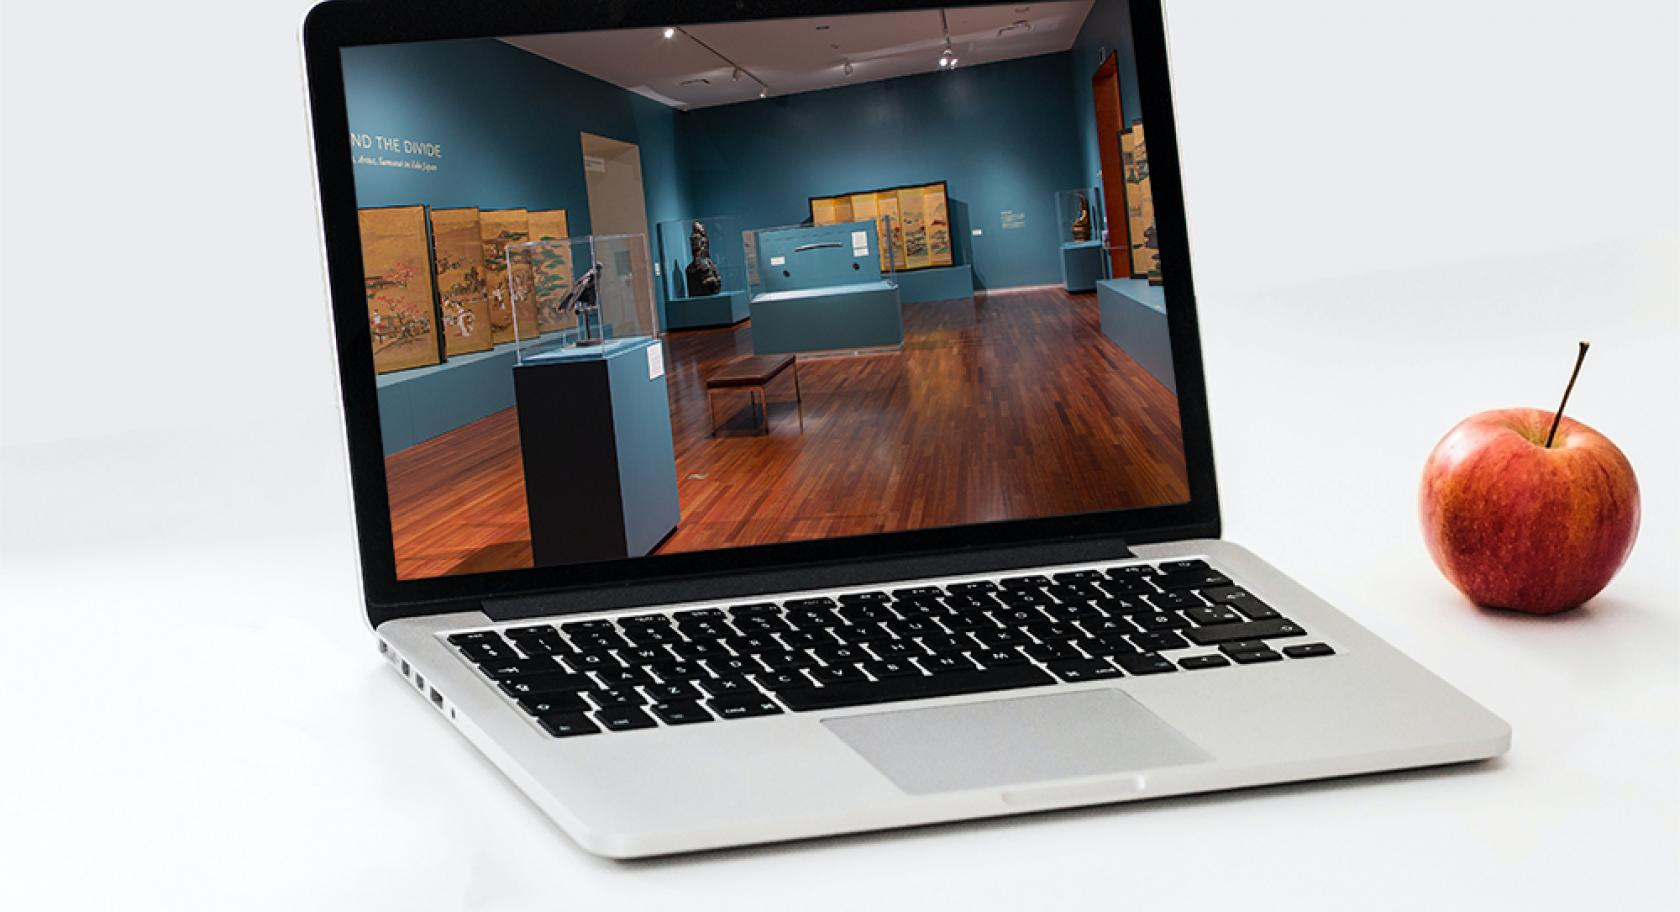 Laptop  on a white backgound with an image of UMFA Beyond the Divide gallery on the screen, an apple sits next to the laptop